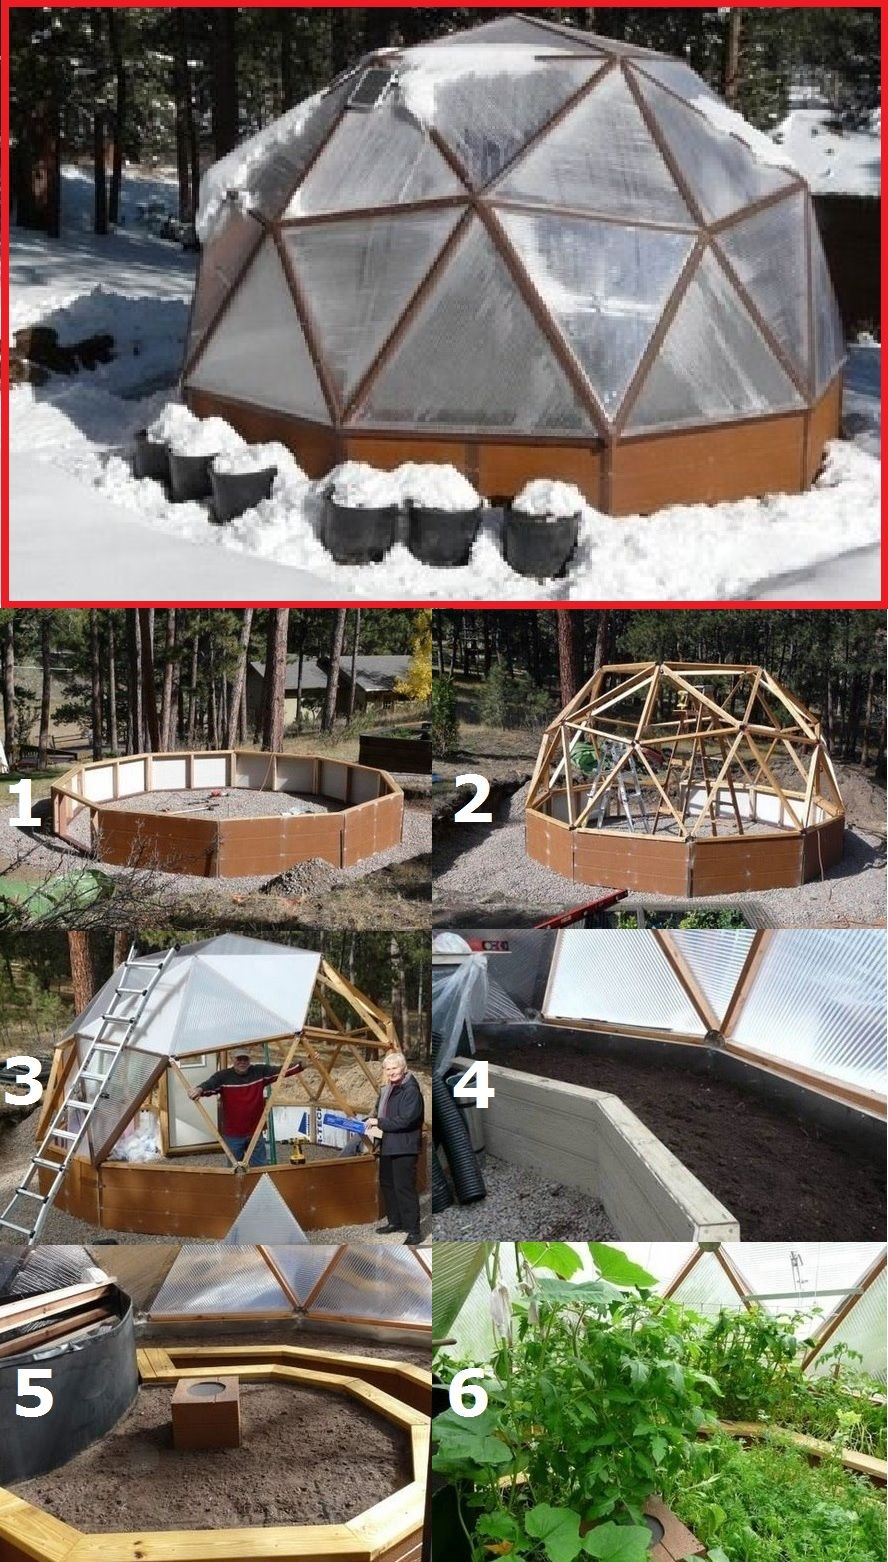 02c75106ac550021cd34d4081274283a Pallet Dome House Plan on pallet projects, pallet house already built, pallet furniture, pallet house construction, pallet ideas, pallet wall, playhouse plans, pallet photography, pallet dog house, pallet house 500, pallet wood outhouse, pallet bathroom, pallet playground, pallet shelves, pallet playhouse blueprints, pallet signs, pallet outdoor christmas, pallet playhouse for boy, pallet playhouse step by step, pallet houses inside,